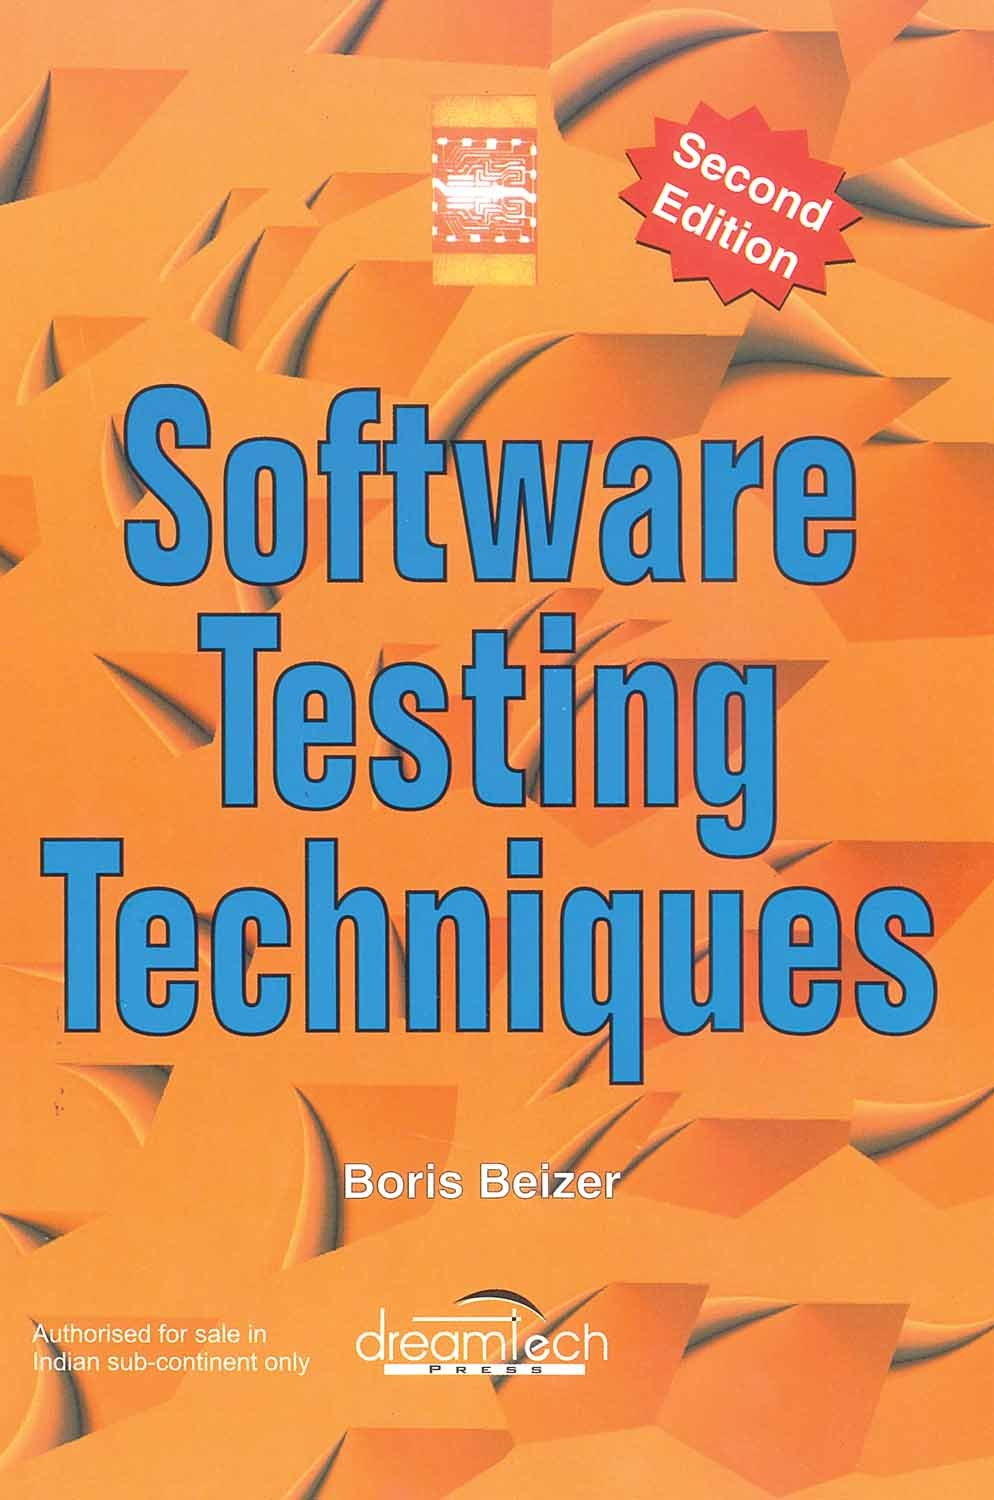 software testing techniques by boris beizer ebook free download